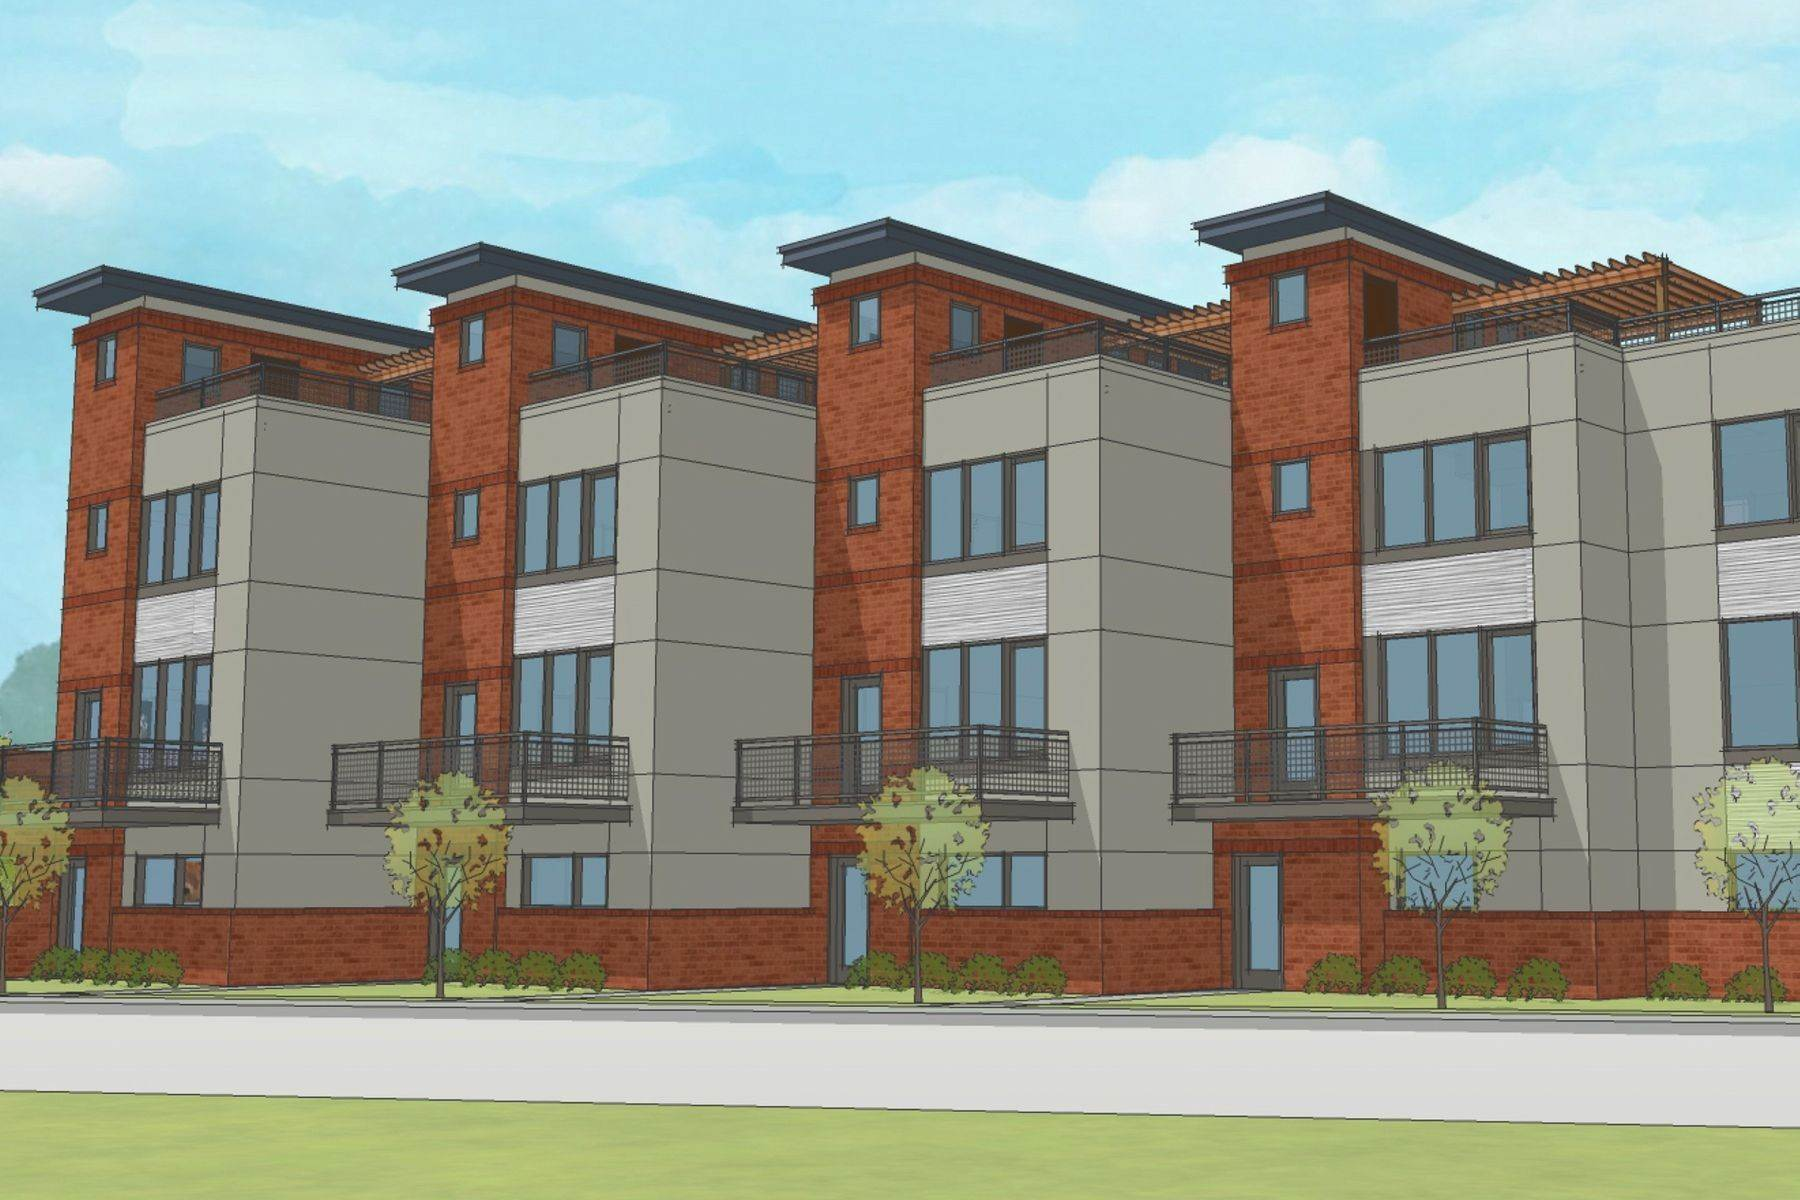 townhouses for Sale at 525 Des Peress- Walker Townhomes 525 Des Peres Avenue St. Louis, Missouri 63112 United States